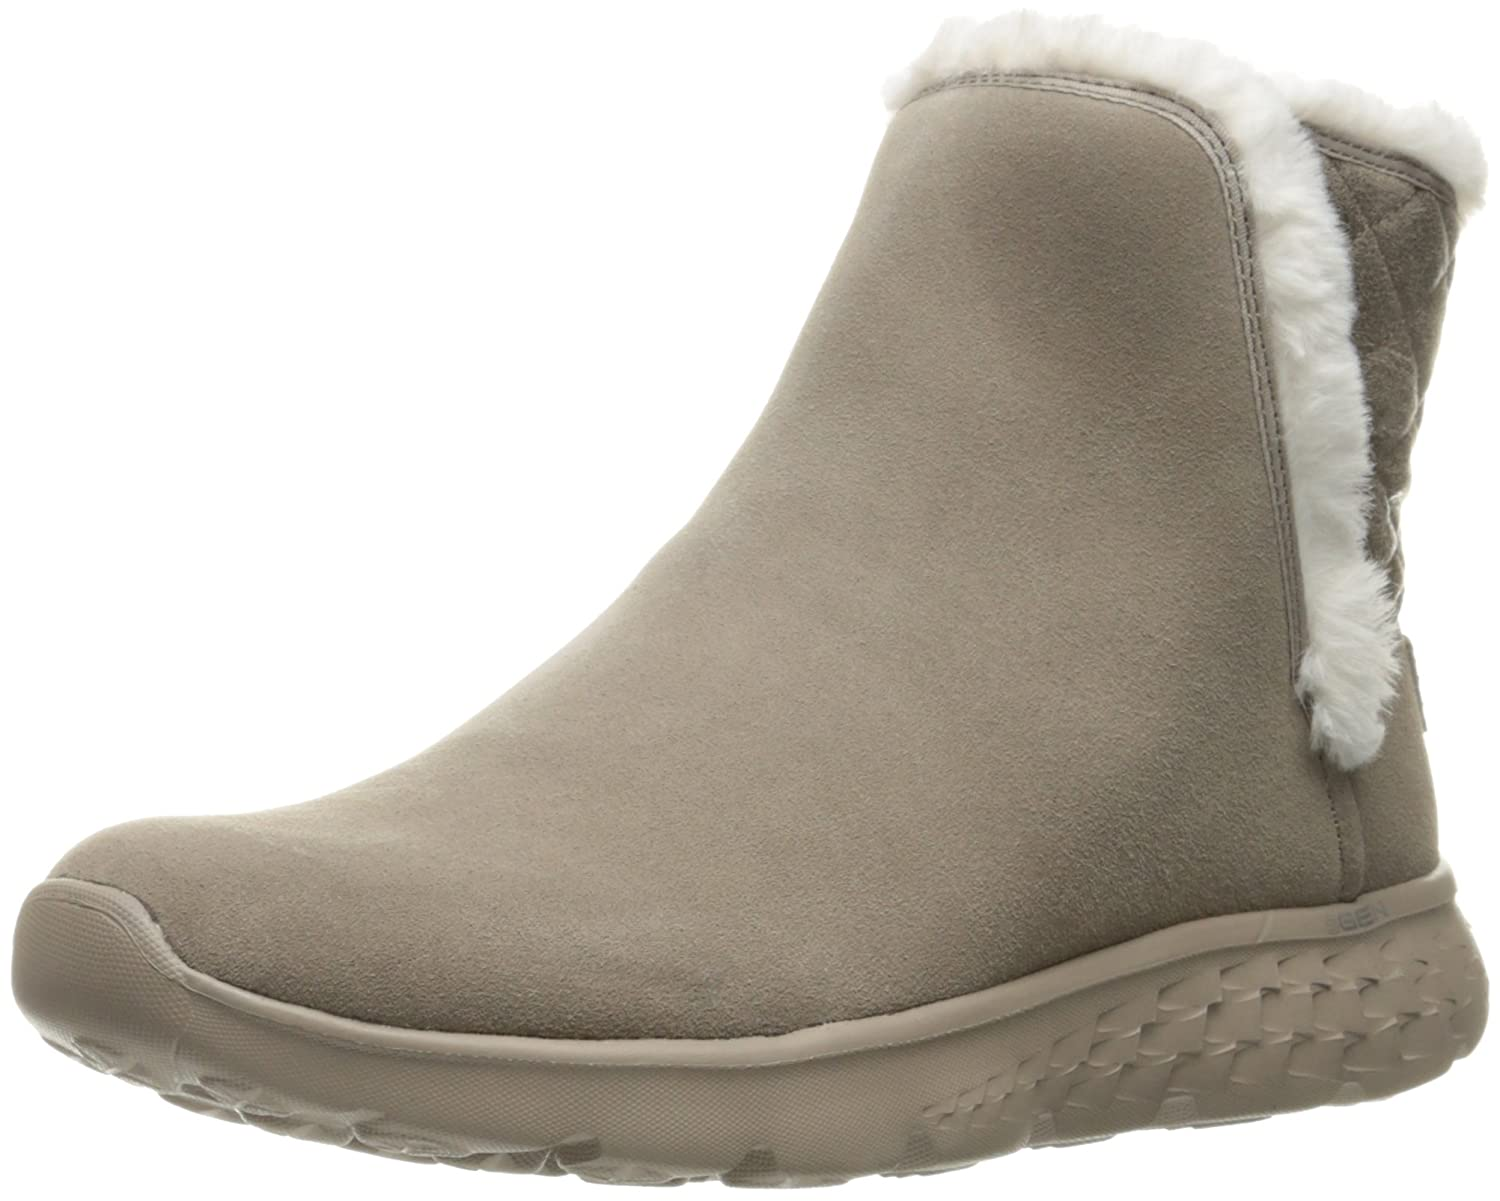 Skechers Performance Women's On The Go 400 Cozies Winter Boot B01B2VO5DS 8.5 B(M) US|Taupe